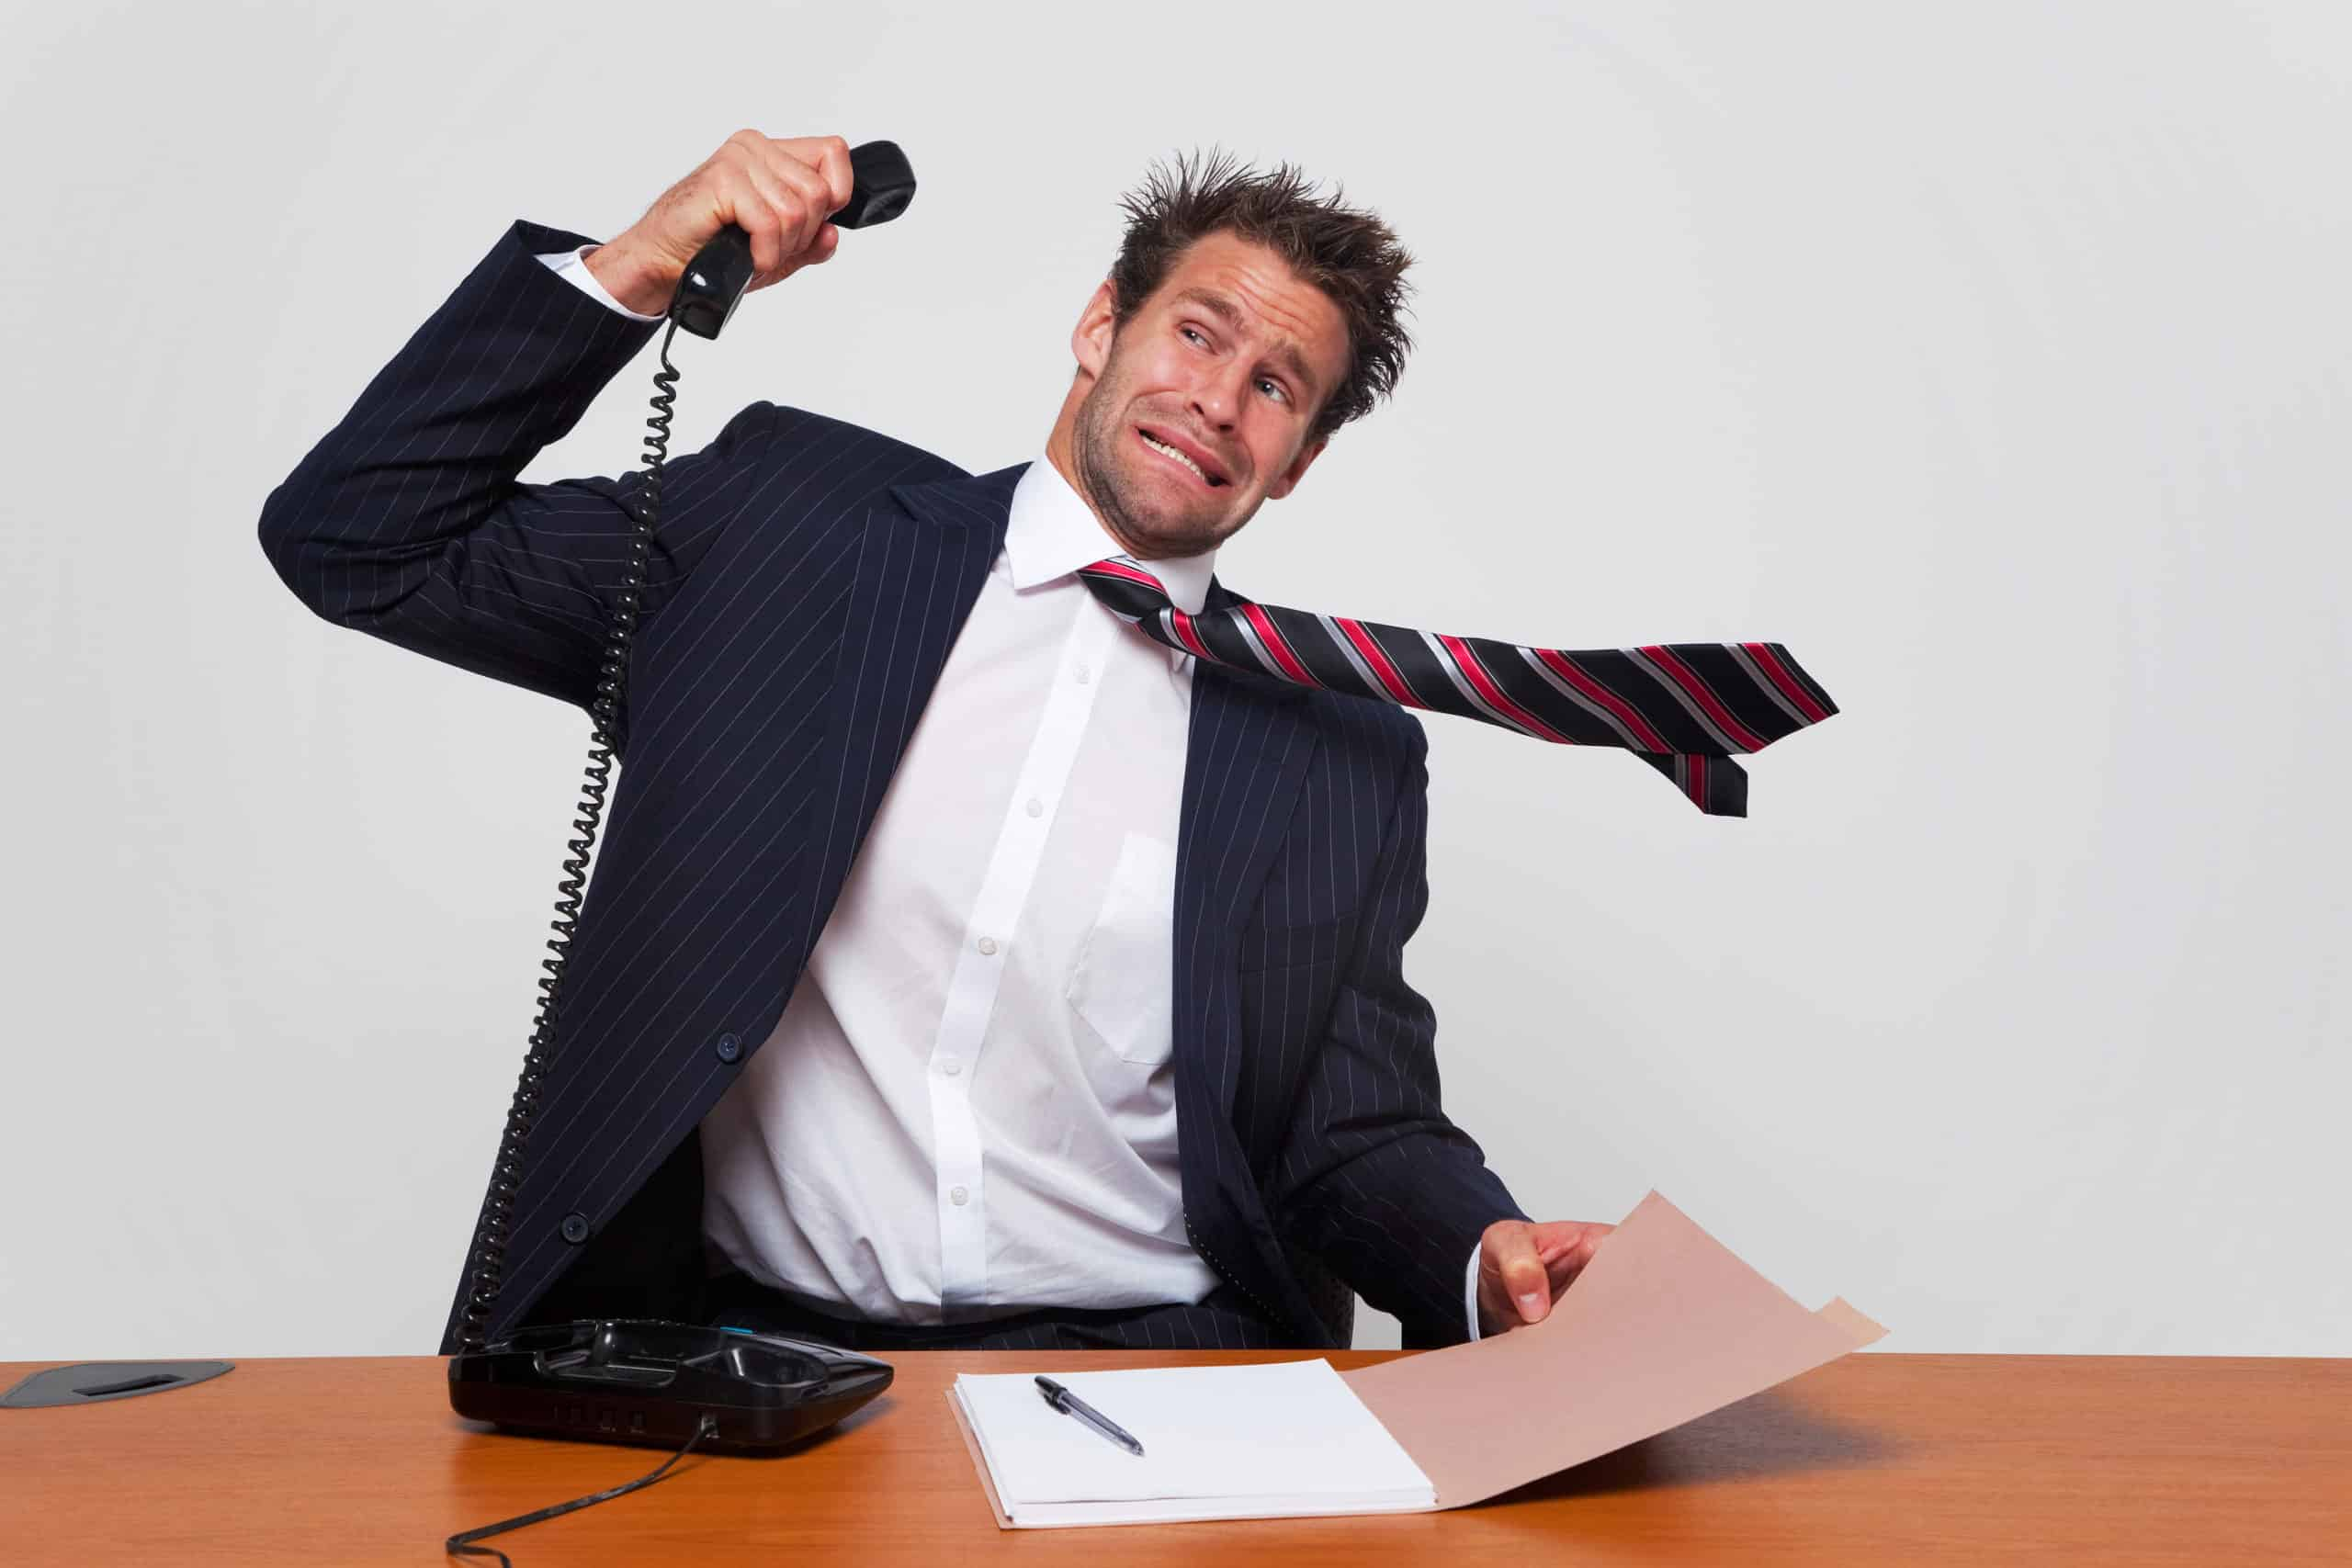 Make sure you're not disturbing your potential customers when making cold calls